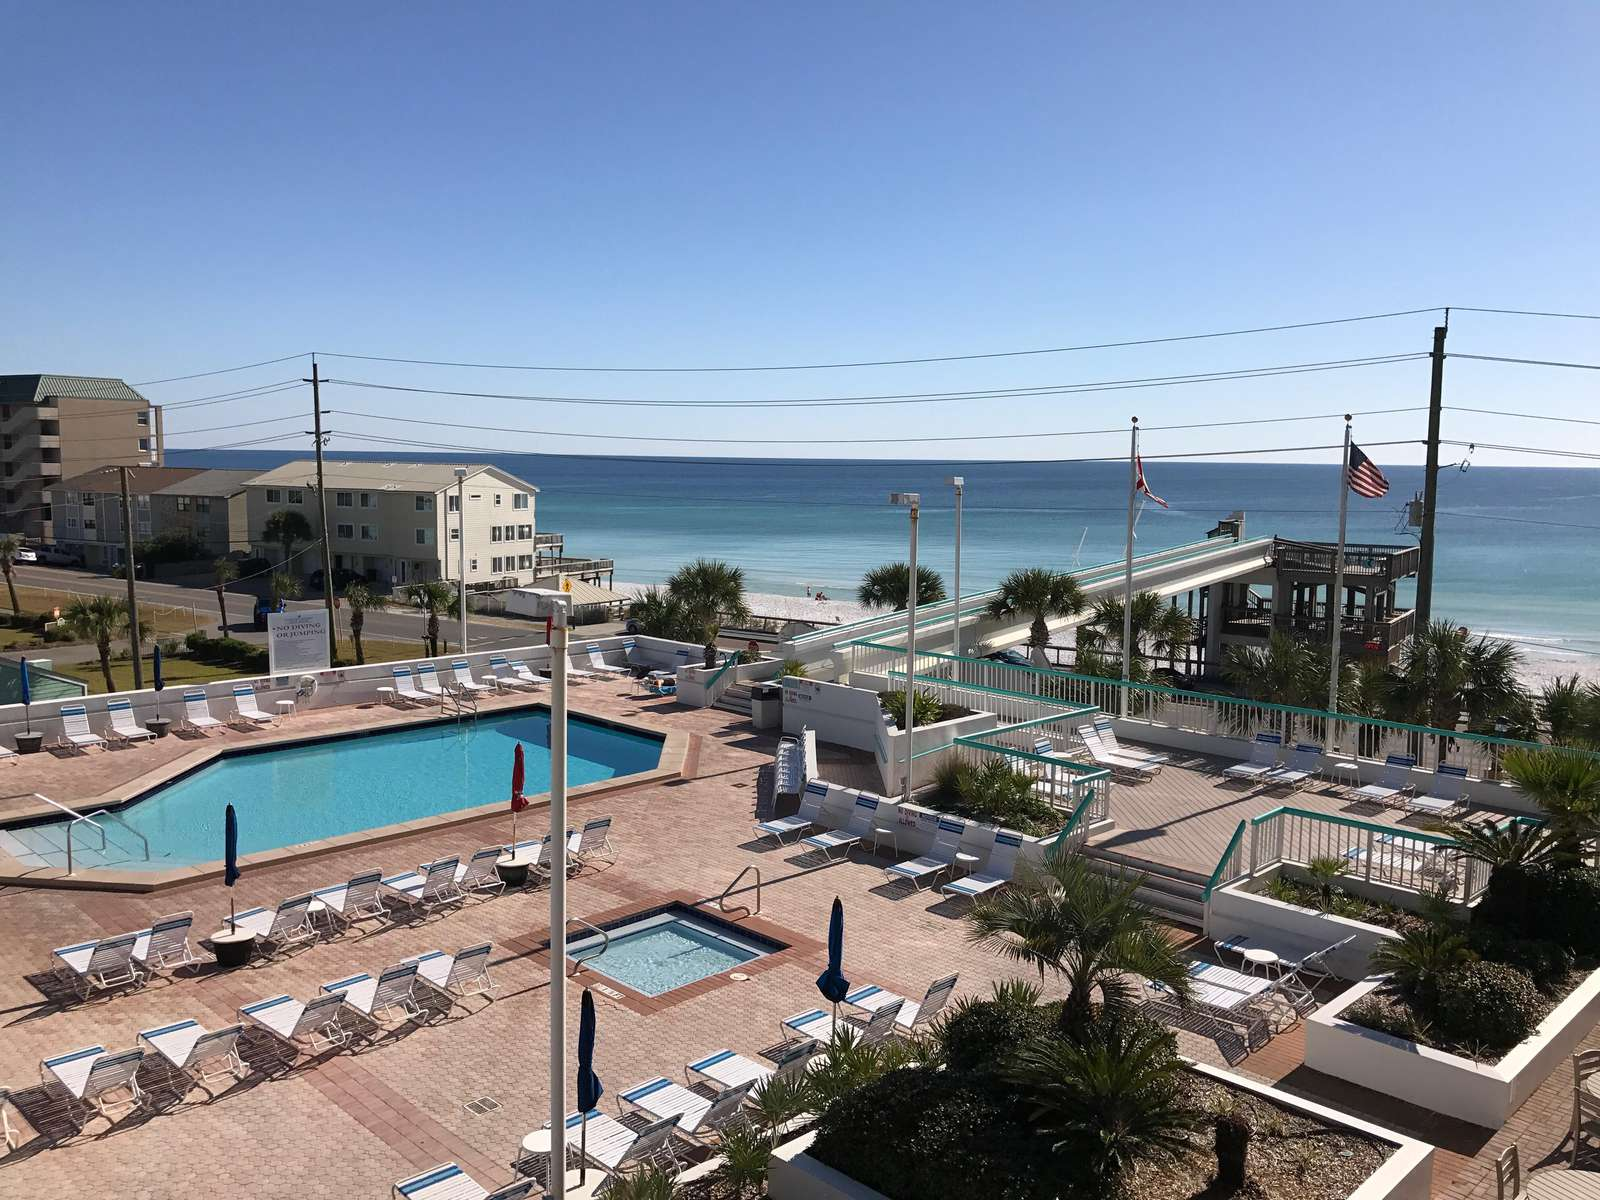 The pool deck features a large pool, 2 hot tubs, kiddie pool, tiki bar and beach road walkover.  There is also a beach bar on the walkover.